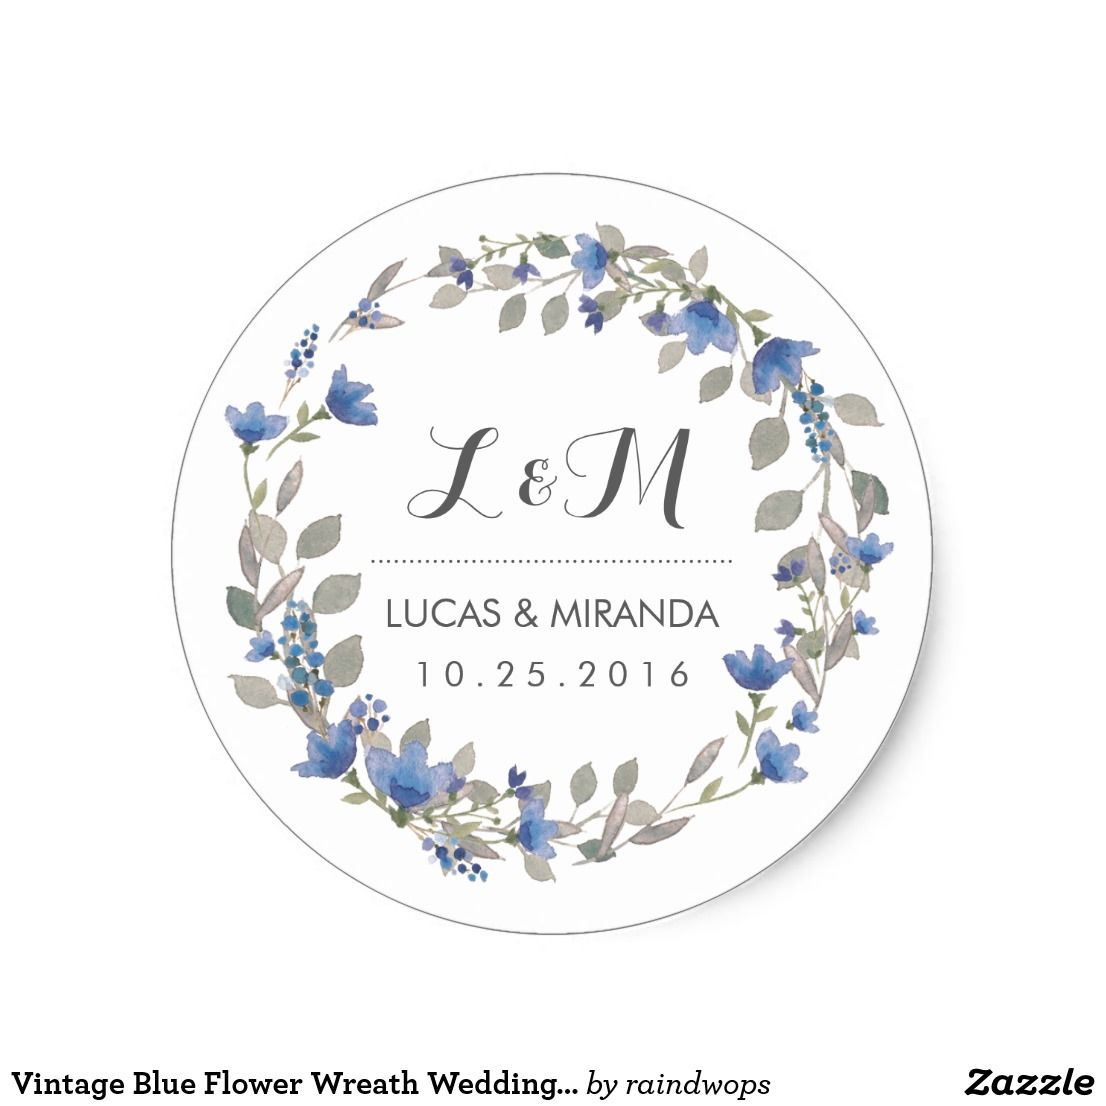 Vintage blue flower wreath wedding favor sticker izmirmasajfo